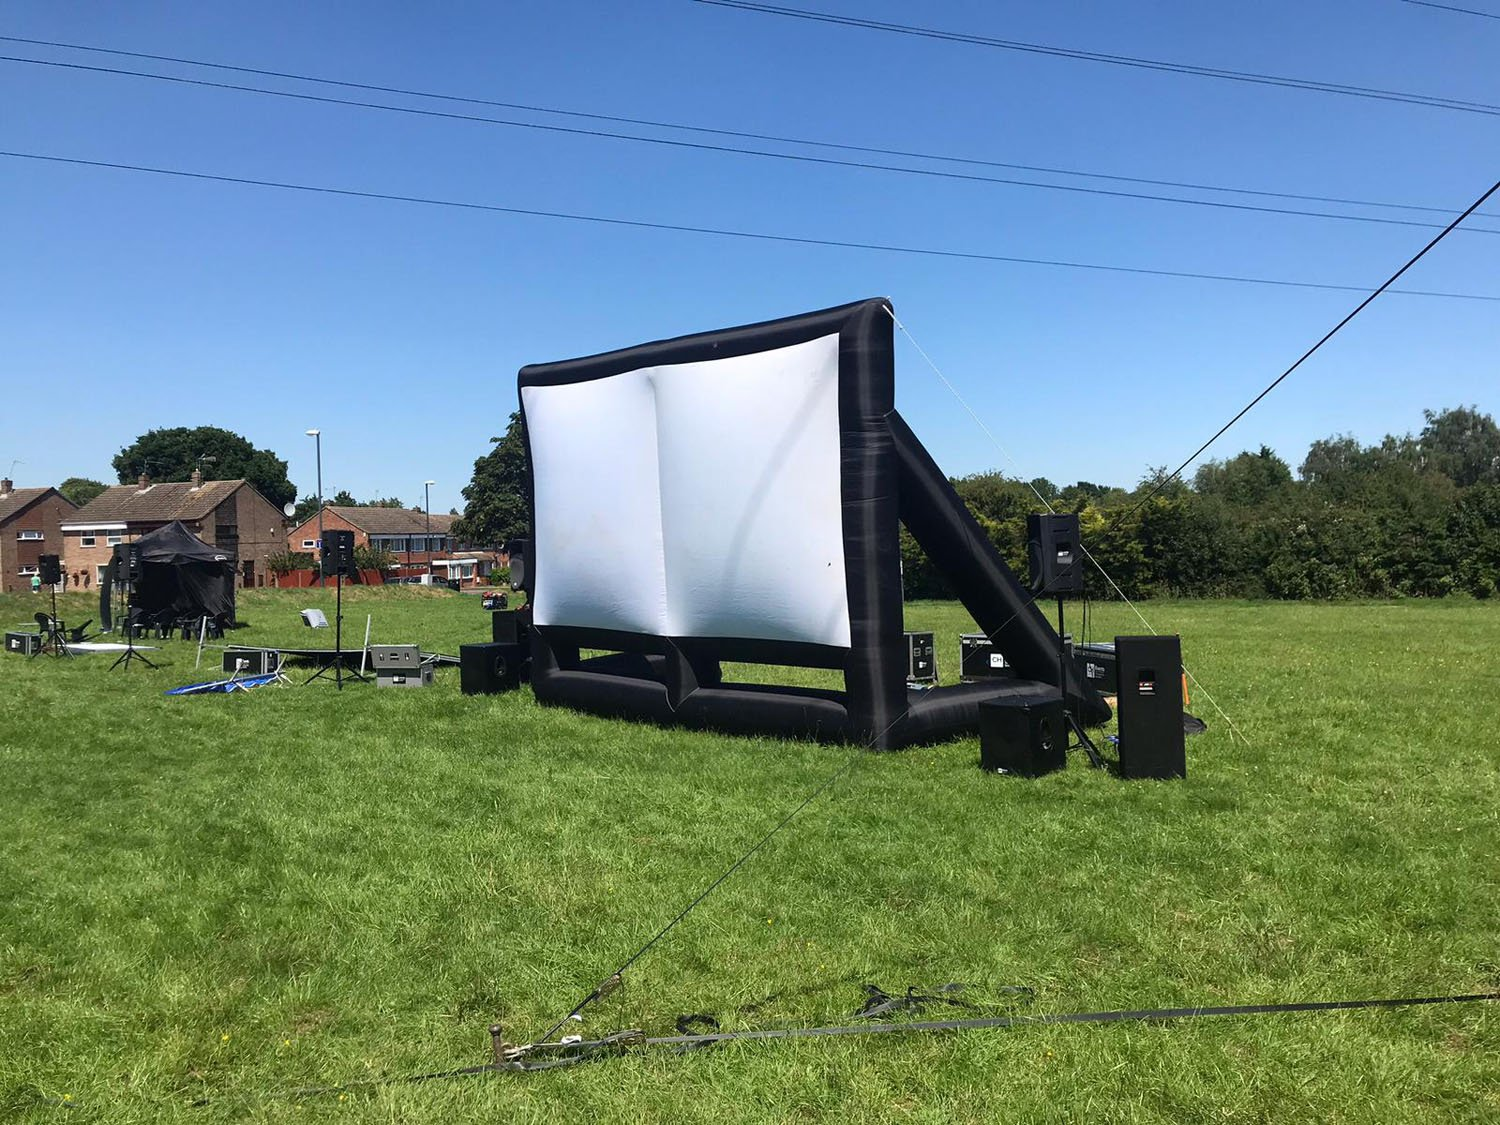 cinema hire, screen hire, pop up cinema hire, outdoor cinema hire, indoor cinema hire, projector hire